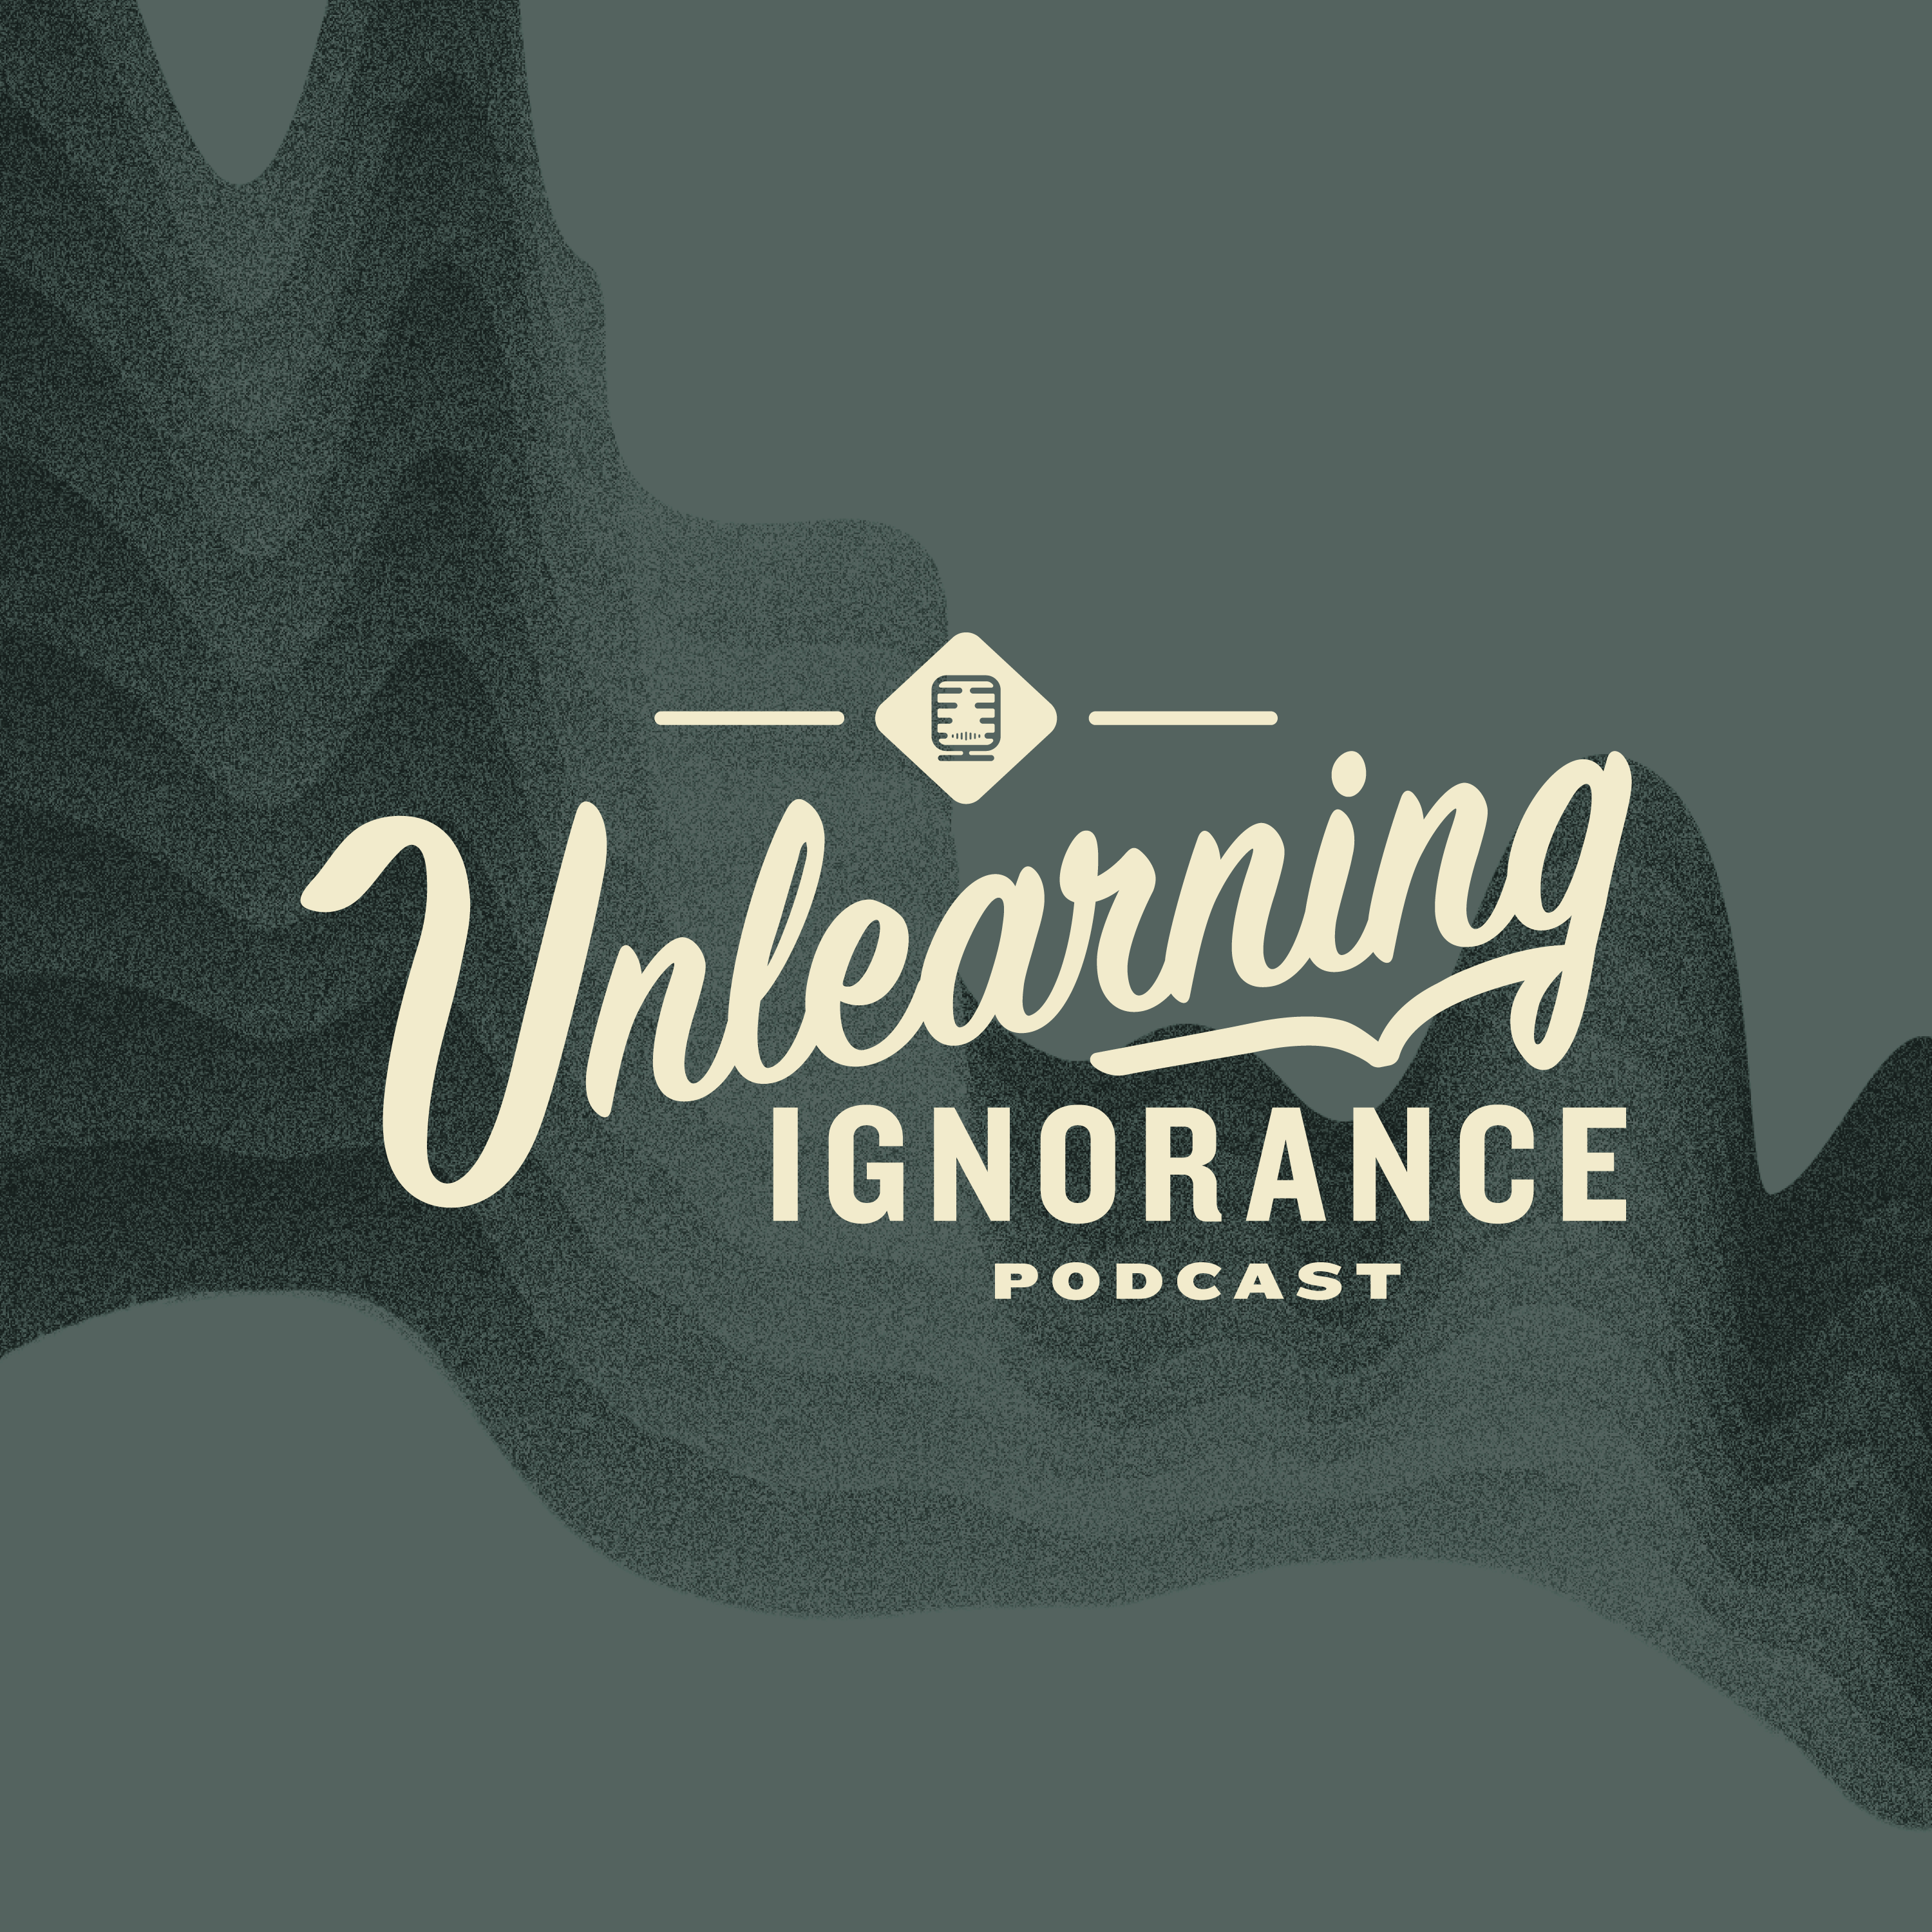 Unlearning Ignorance show art